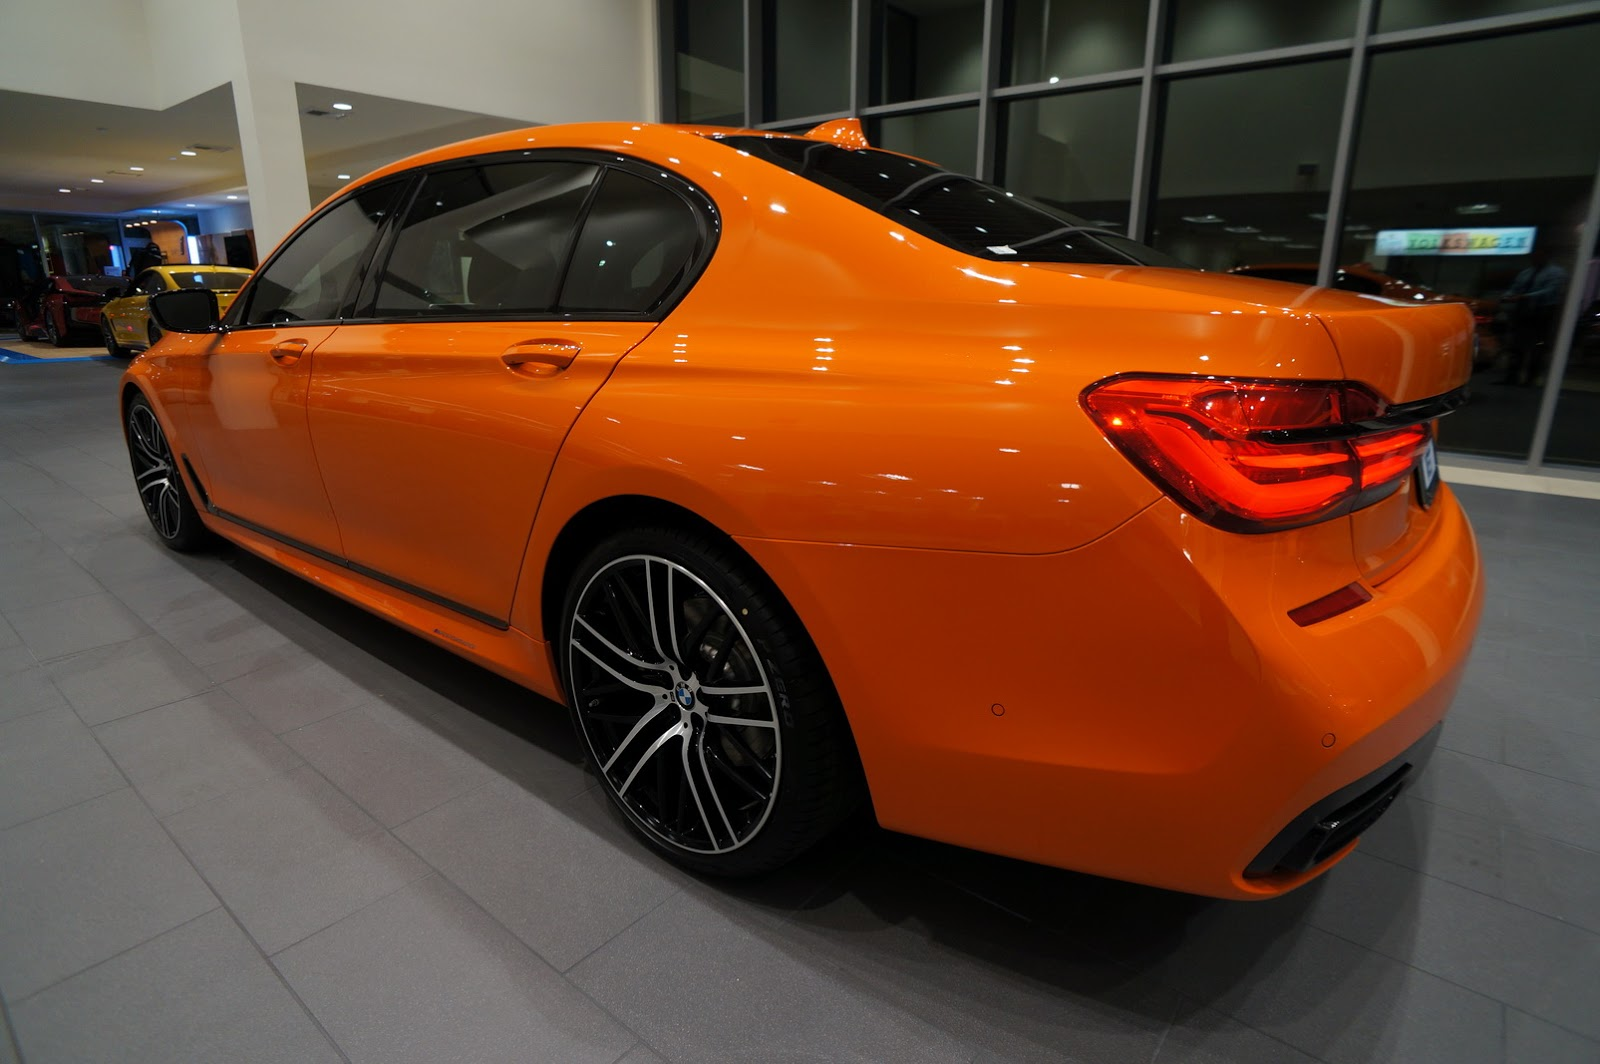 BMW_750i_Fire_Orange_06